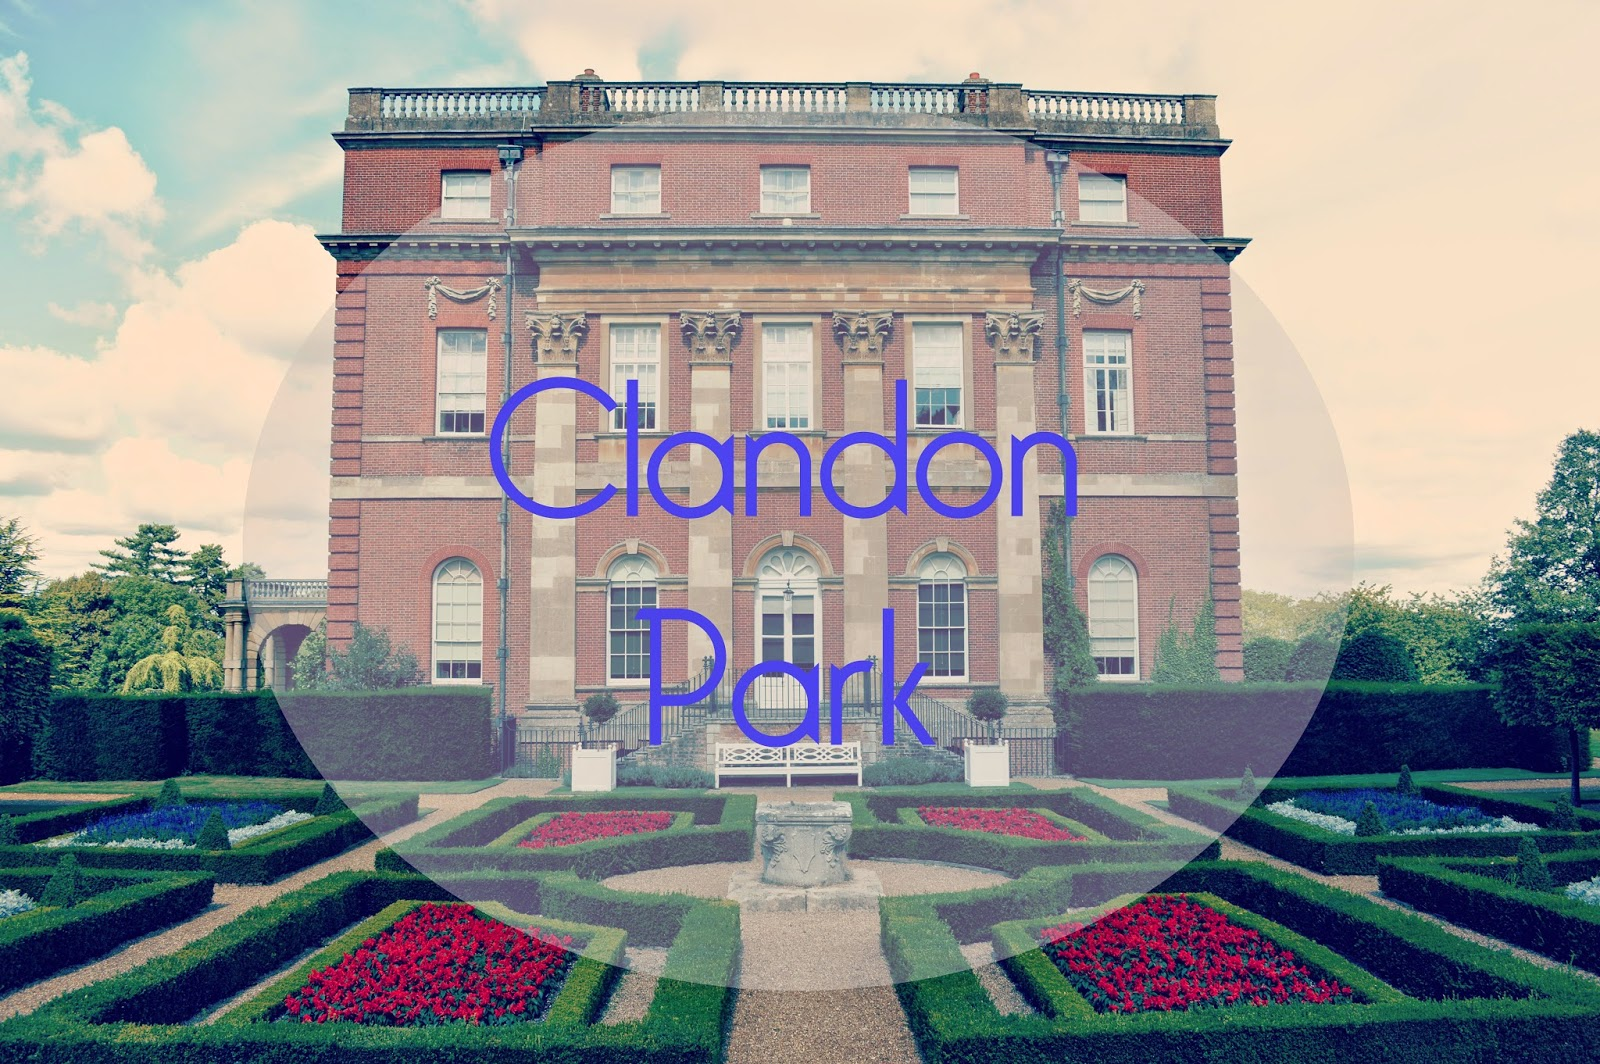 photo, photography, pictures, Clandon Park, National Trust, visit, Guilford, UK, Historical properties, Palladian architecture, Venetian style, Onslow, speaker house of commons, war hospital, gardens